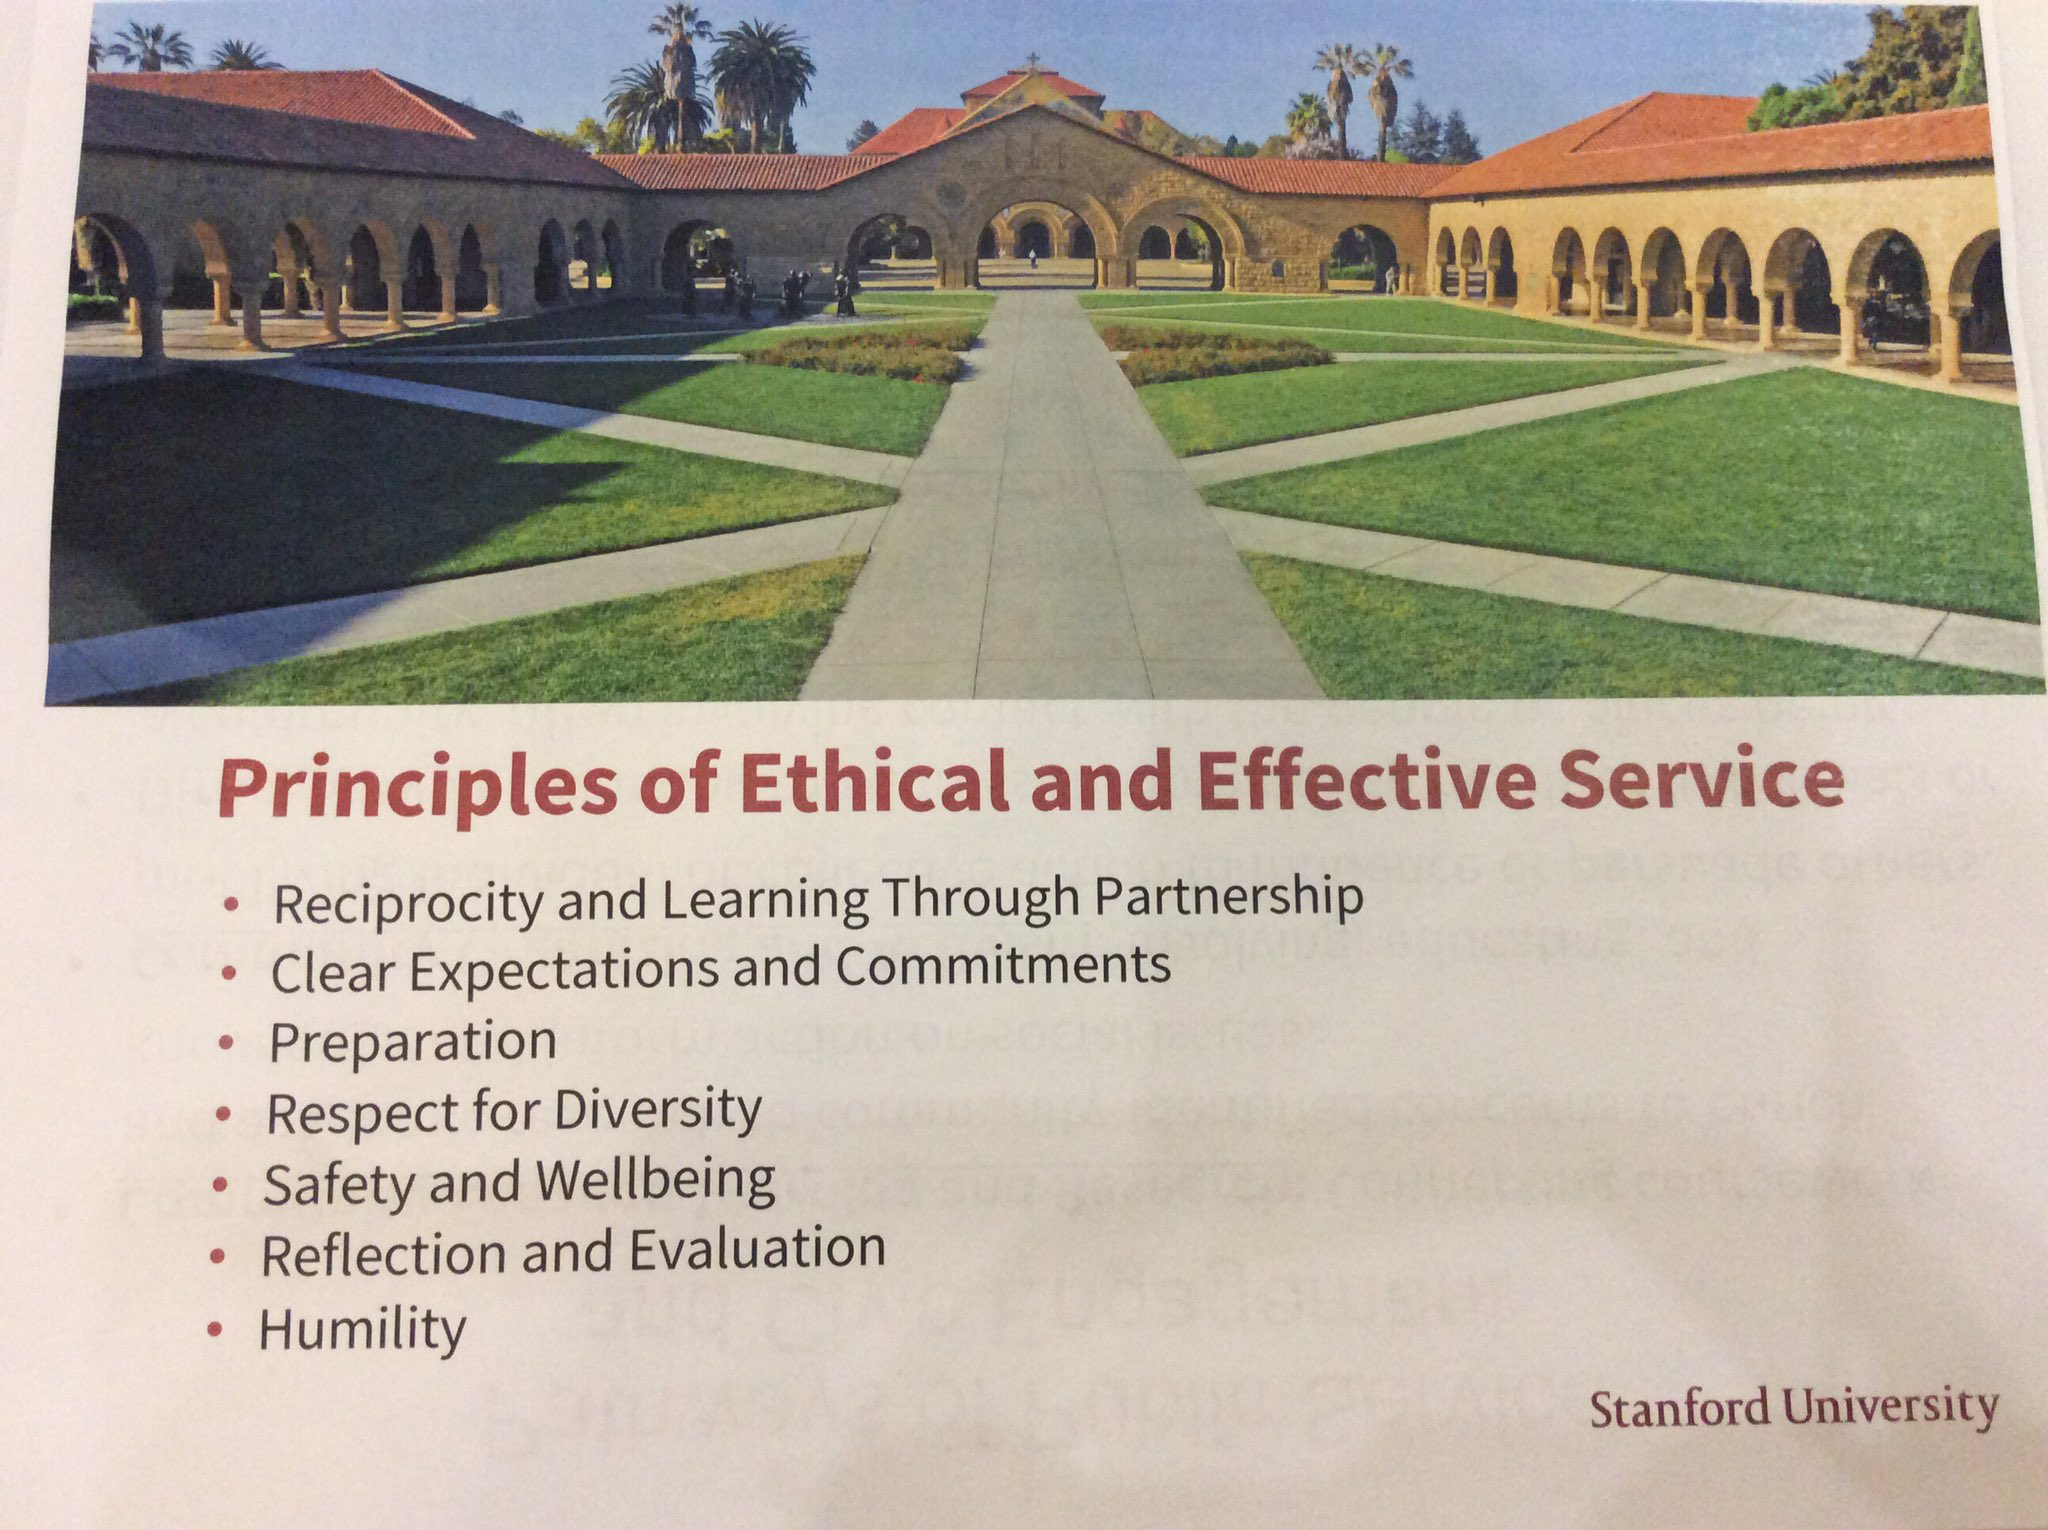 @Stanford, Thomas Schnuabelt: Effective service in the community requires training in ethics @AshokaU #Exchange2017 https://t.co/EAKB9pbyor